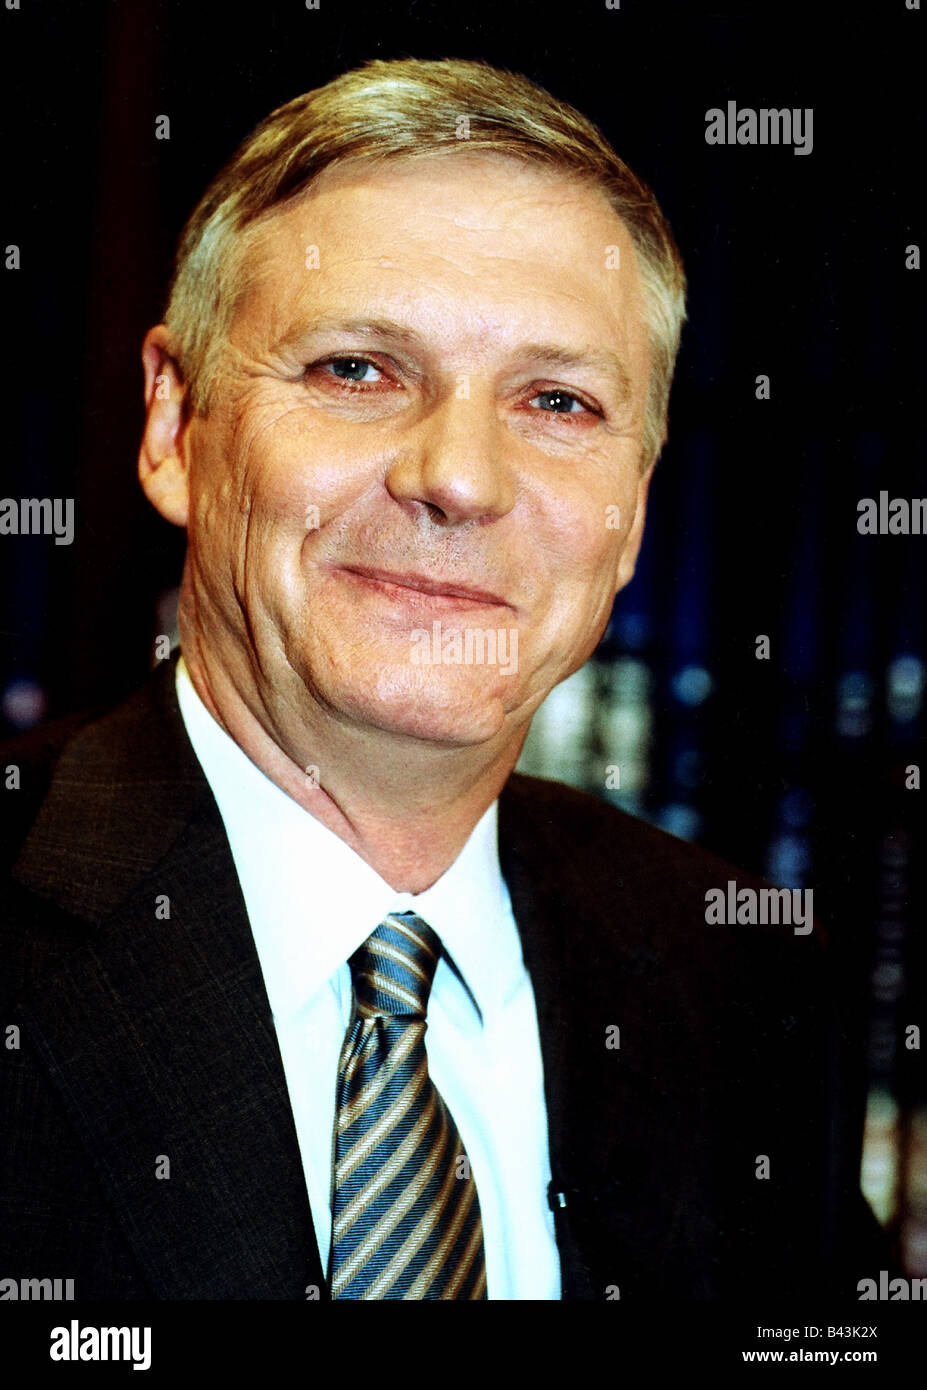 Schleyer, Hanns-Eberhard, German secretary general (ZHD), portrait, 2002, Additional-Rights-Clearances-NA - Stock Image